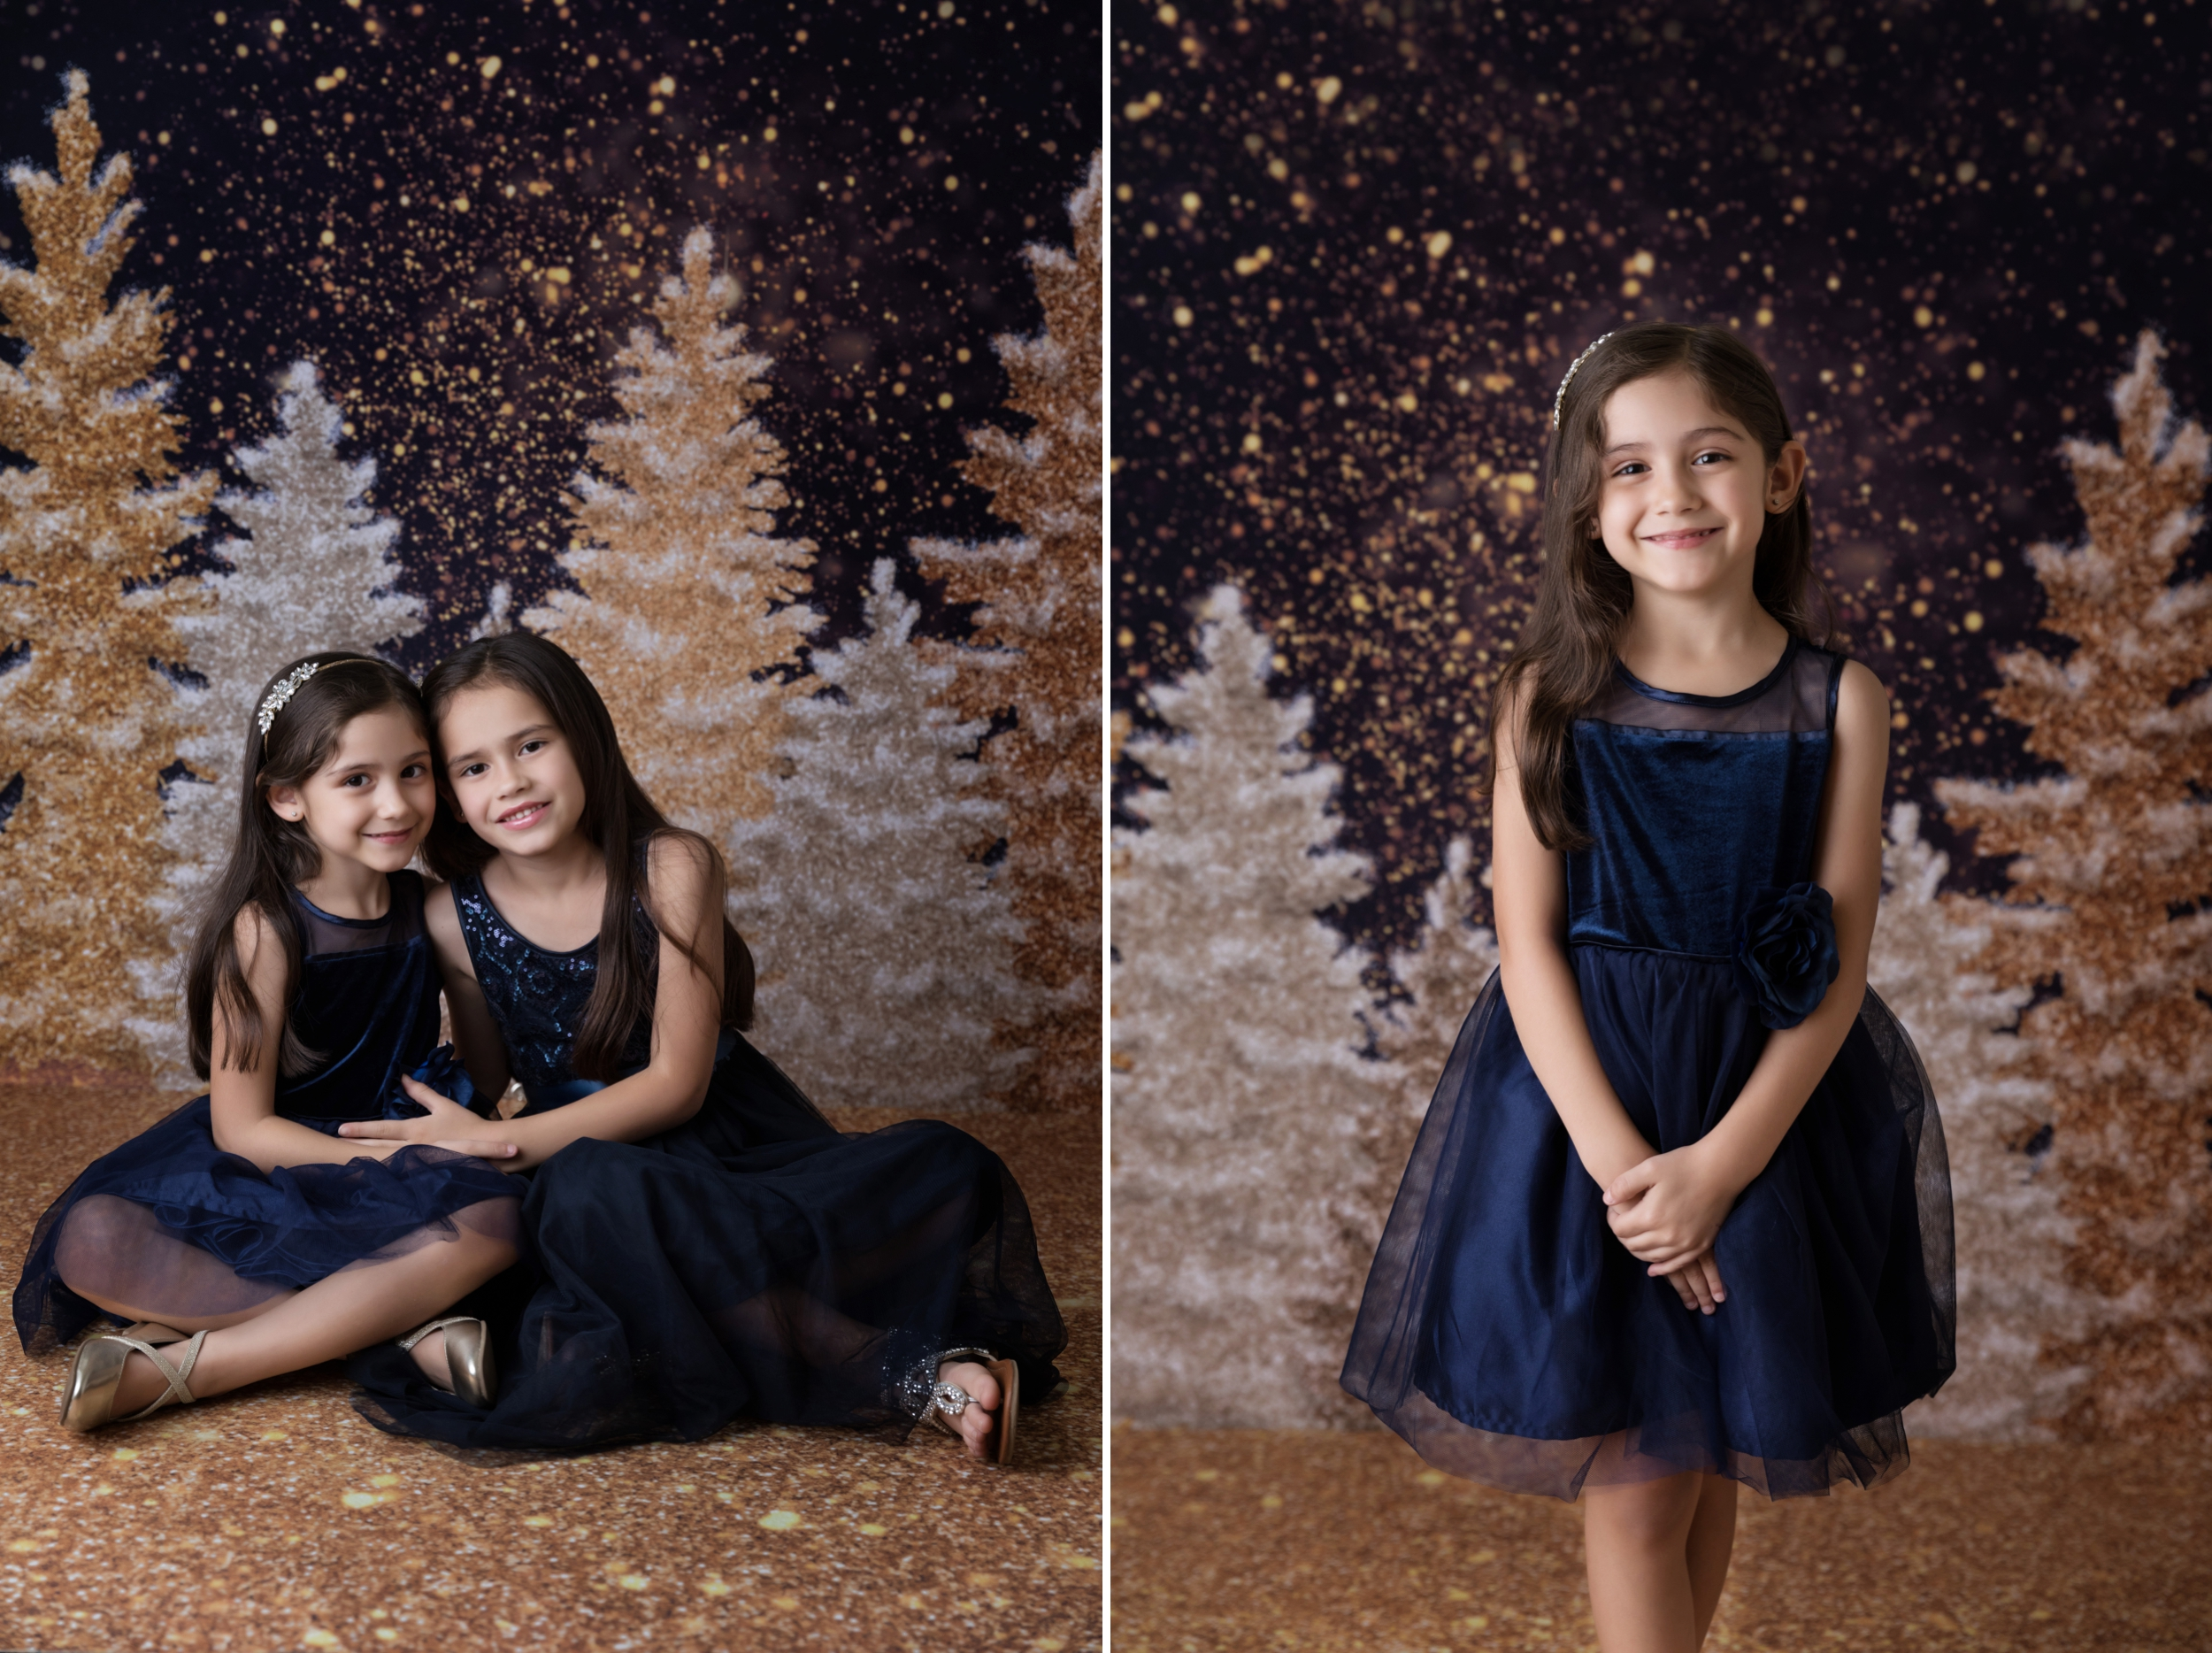 Christmas-Mini-Sessions-Jessica-Doffing-Photography_0004.jpg